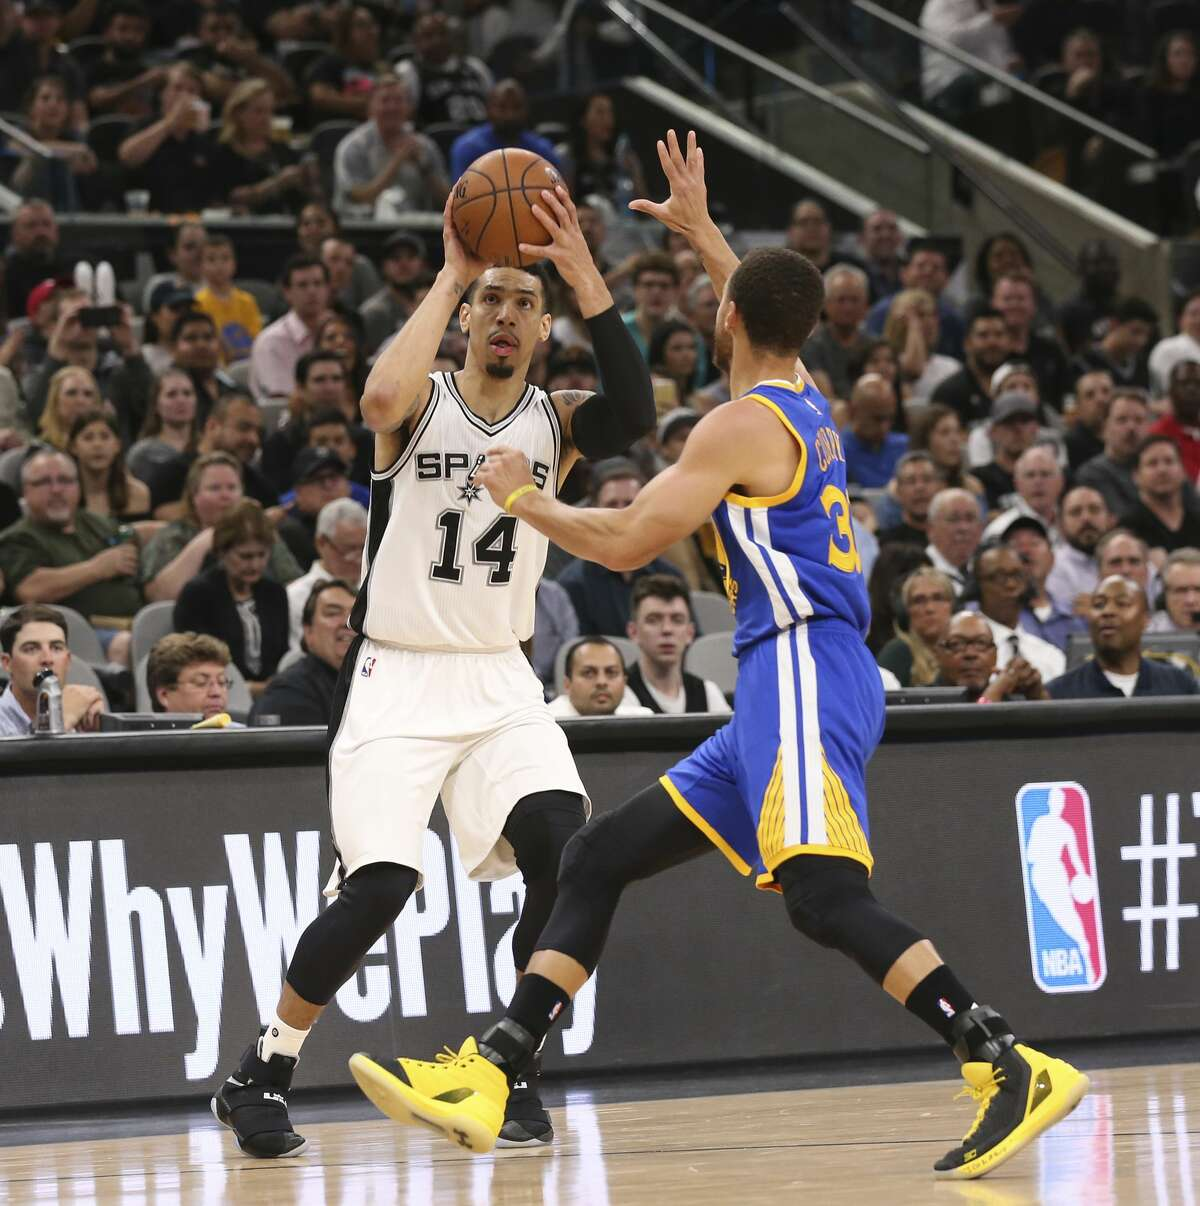 San Antonio Spurs?' Danny Green lines up a three-pointer as Golden State Warriors' Stephen Curry defends during the first half at the AT&T Center, Wednesday, March 29, 2017.